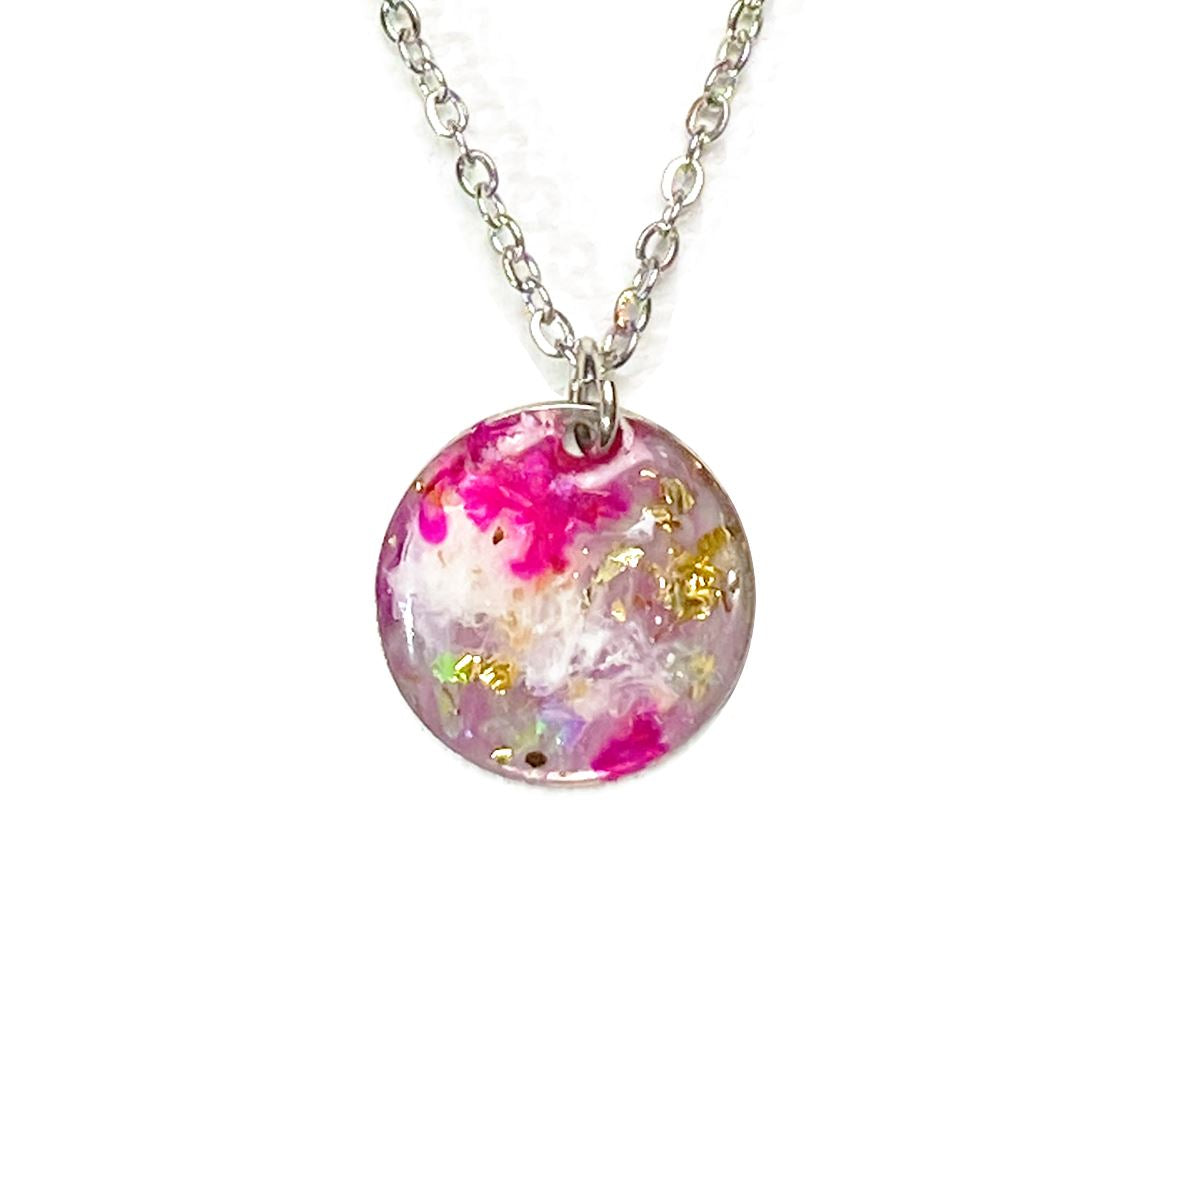 Unicorn Dreams - medium pink holographic necklace with gold flake necklace Deanna Dot Store